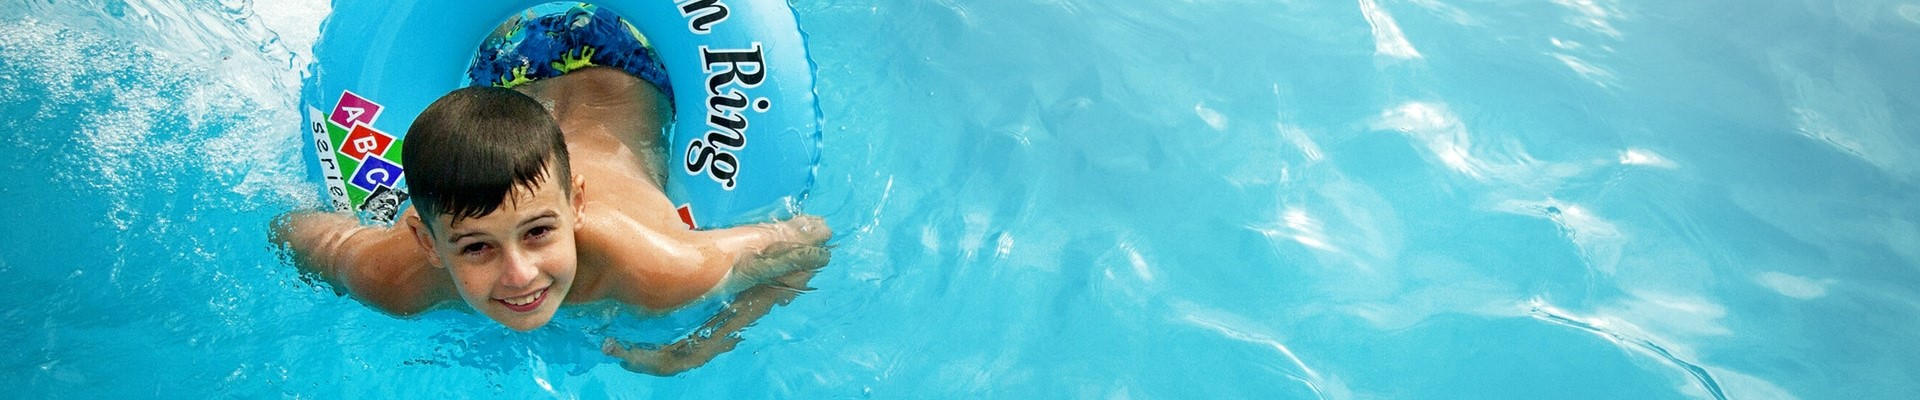 child swimming with a tube in the pool